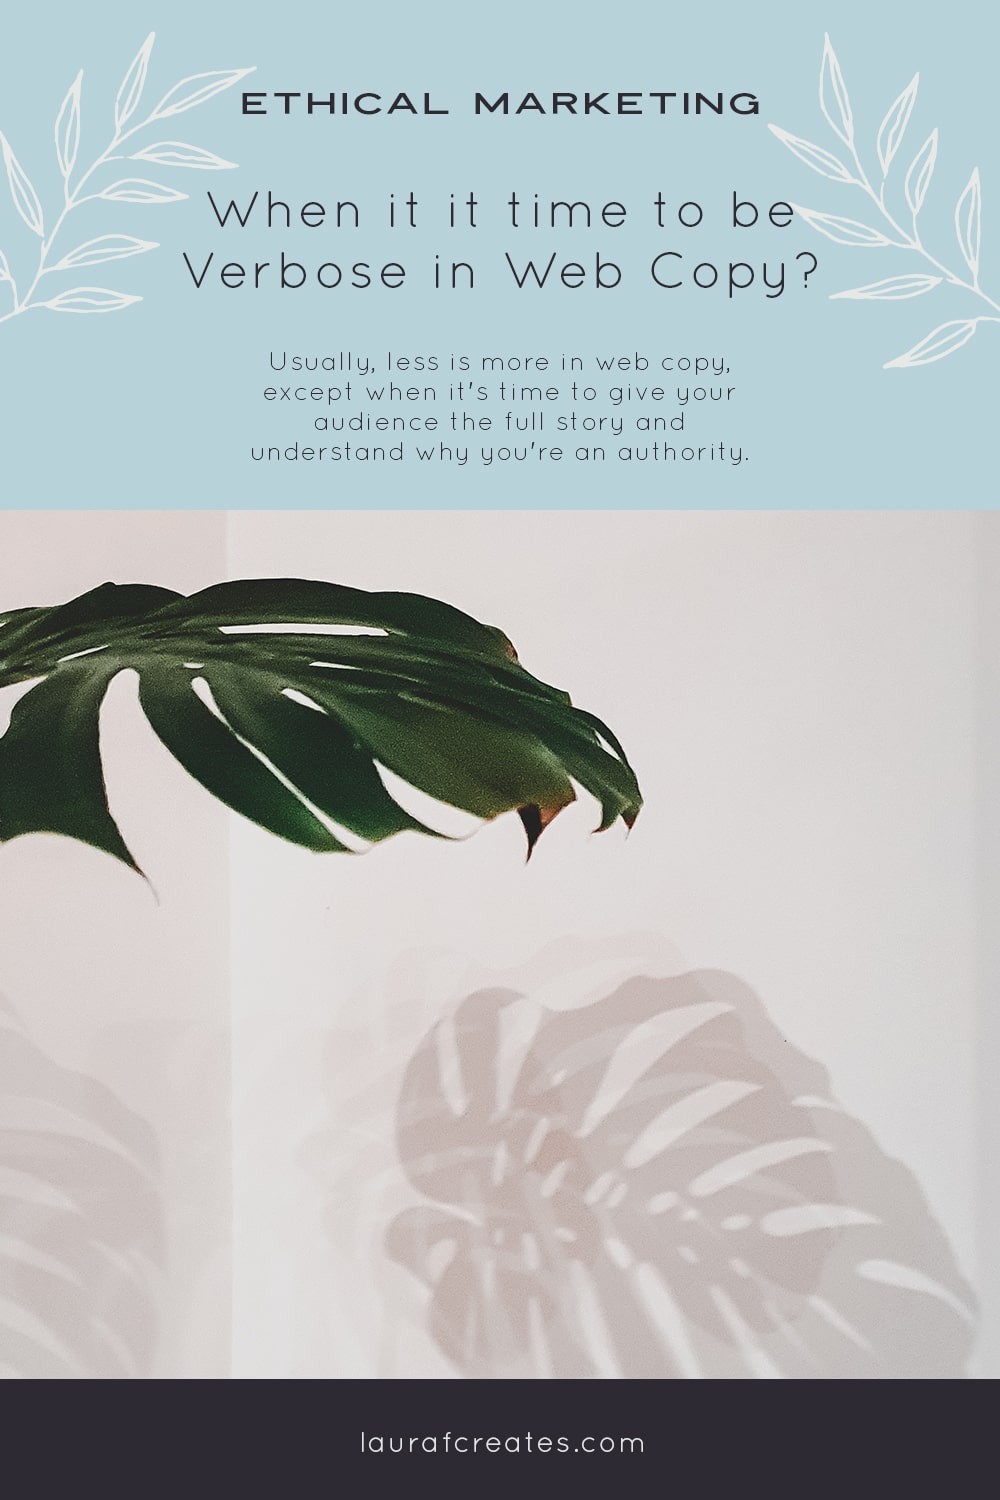 When is it time to be more Verbose in Web Copy?